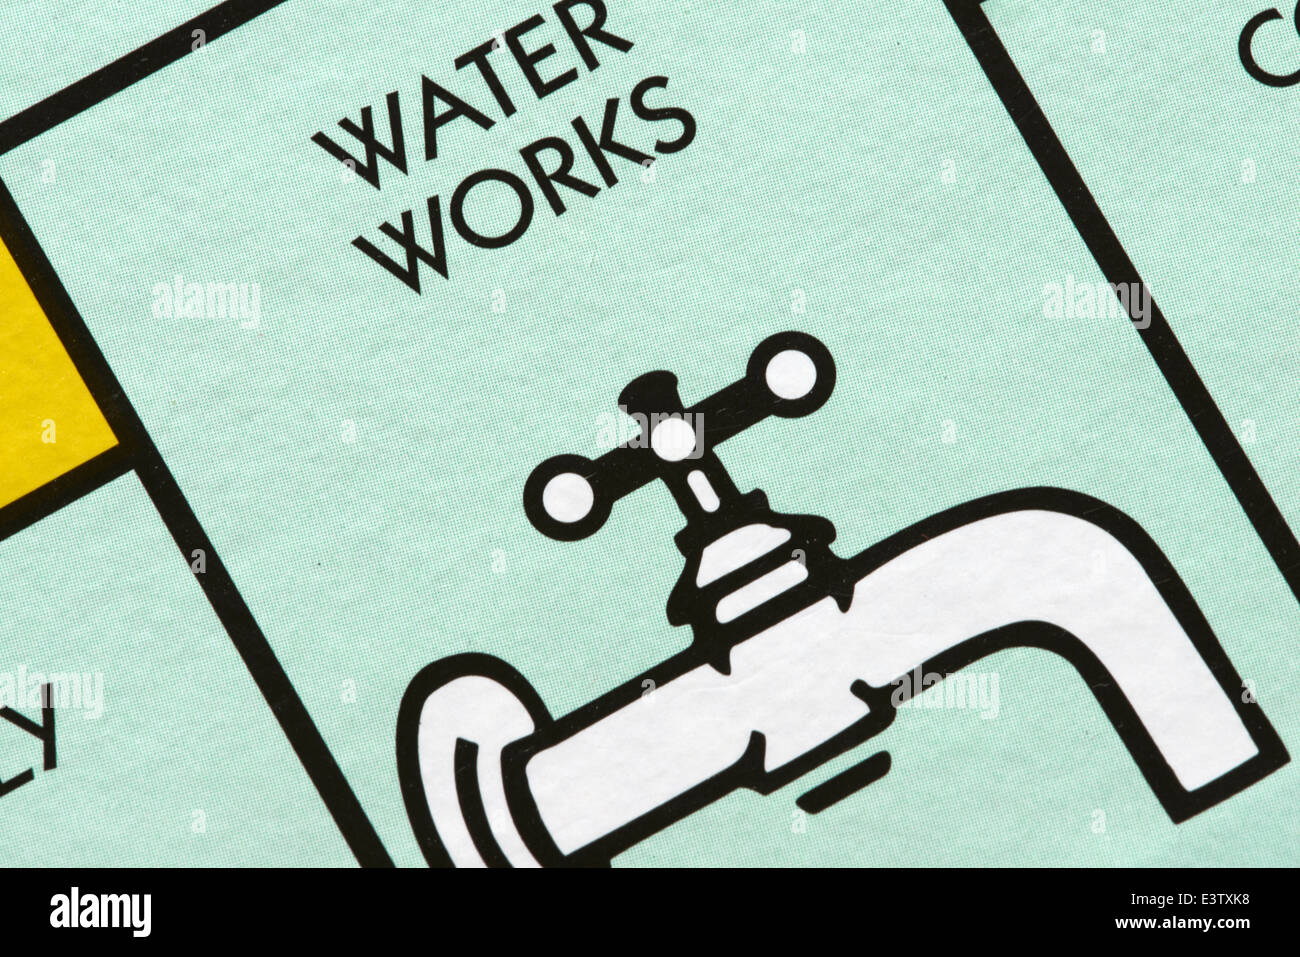 Water works space on a Monopoly Game Board - Stock Image